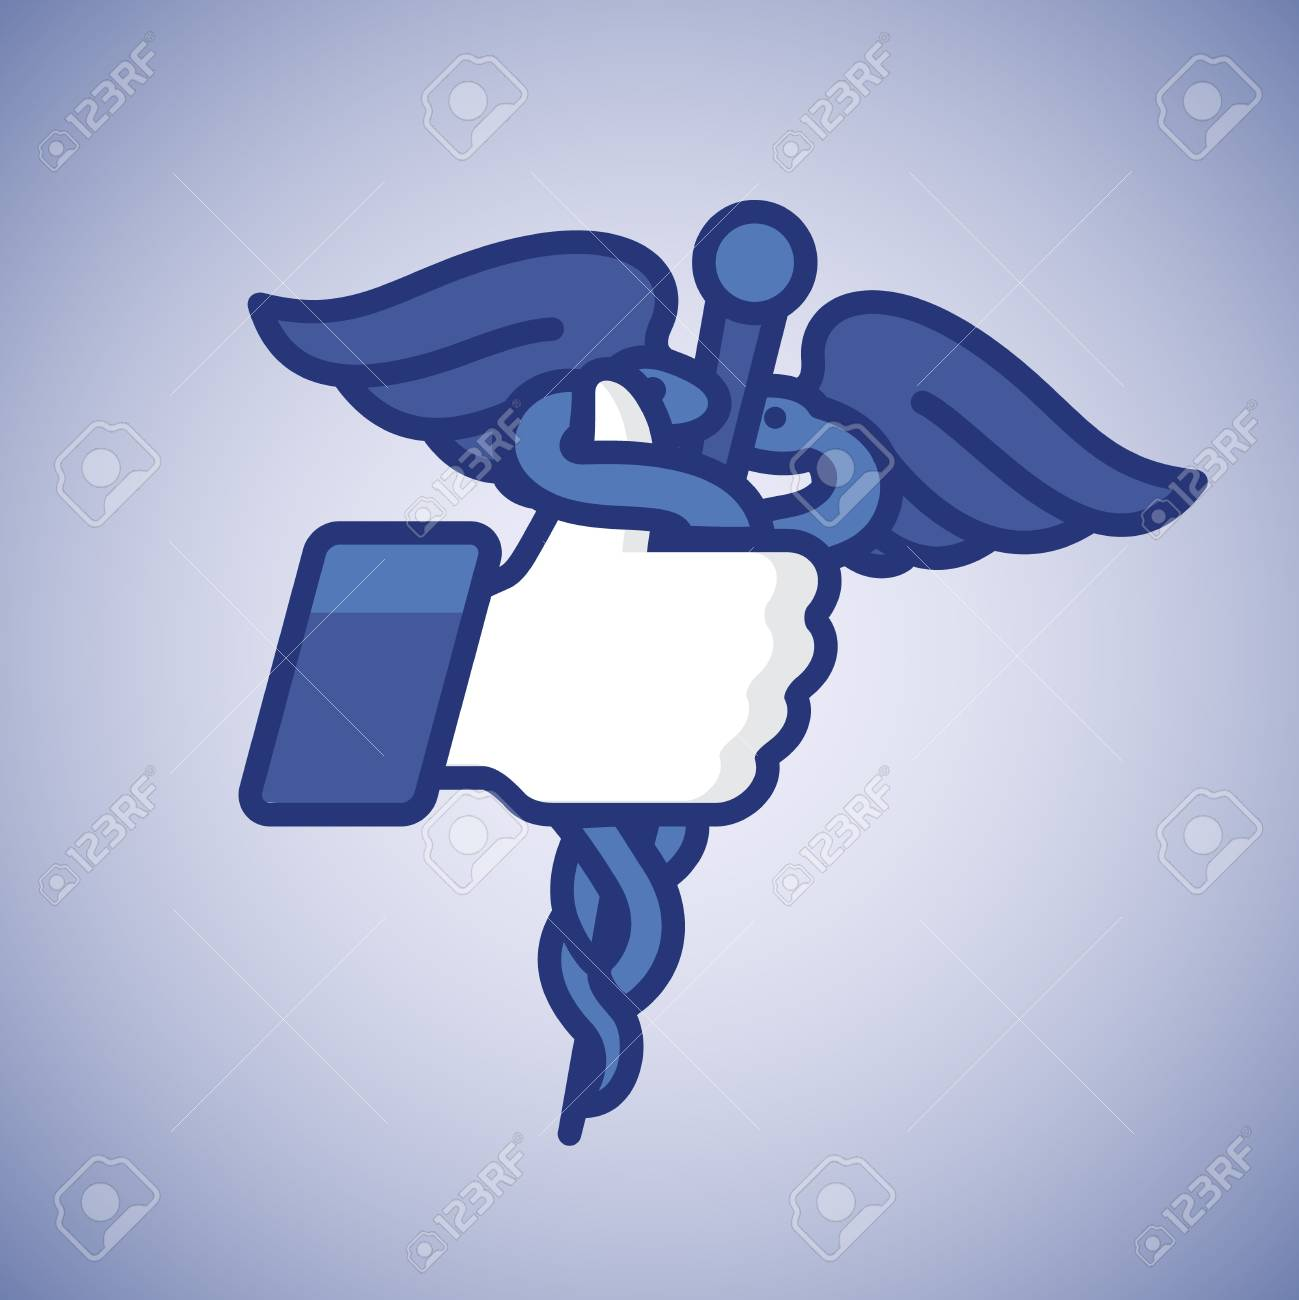 Like Thumbs Up icon with caduceus medical symbol Stock Photo - 20869296